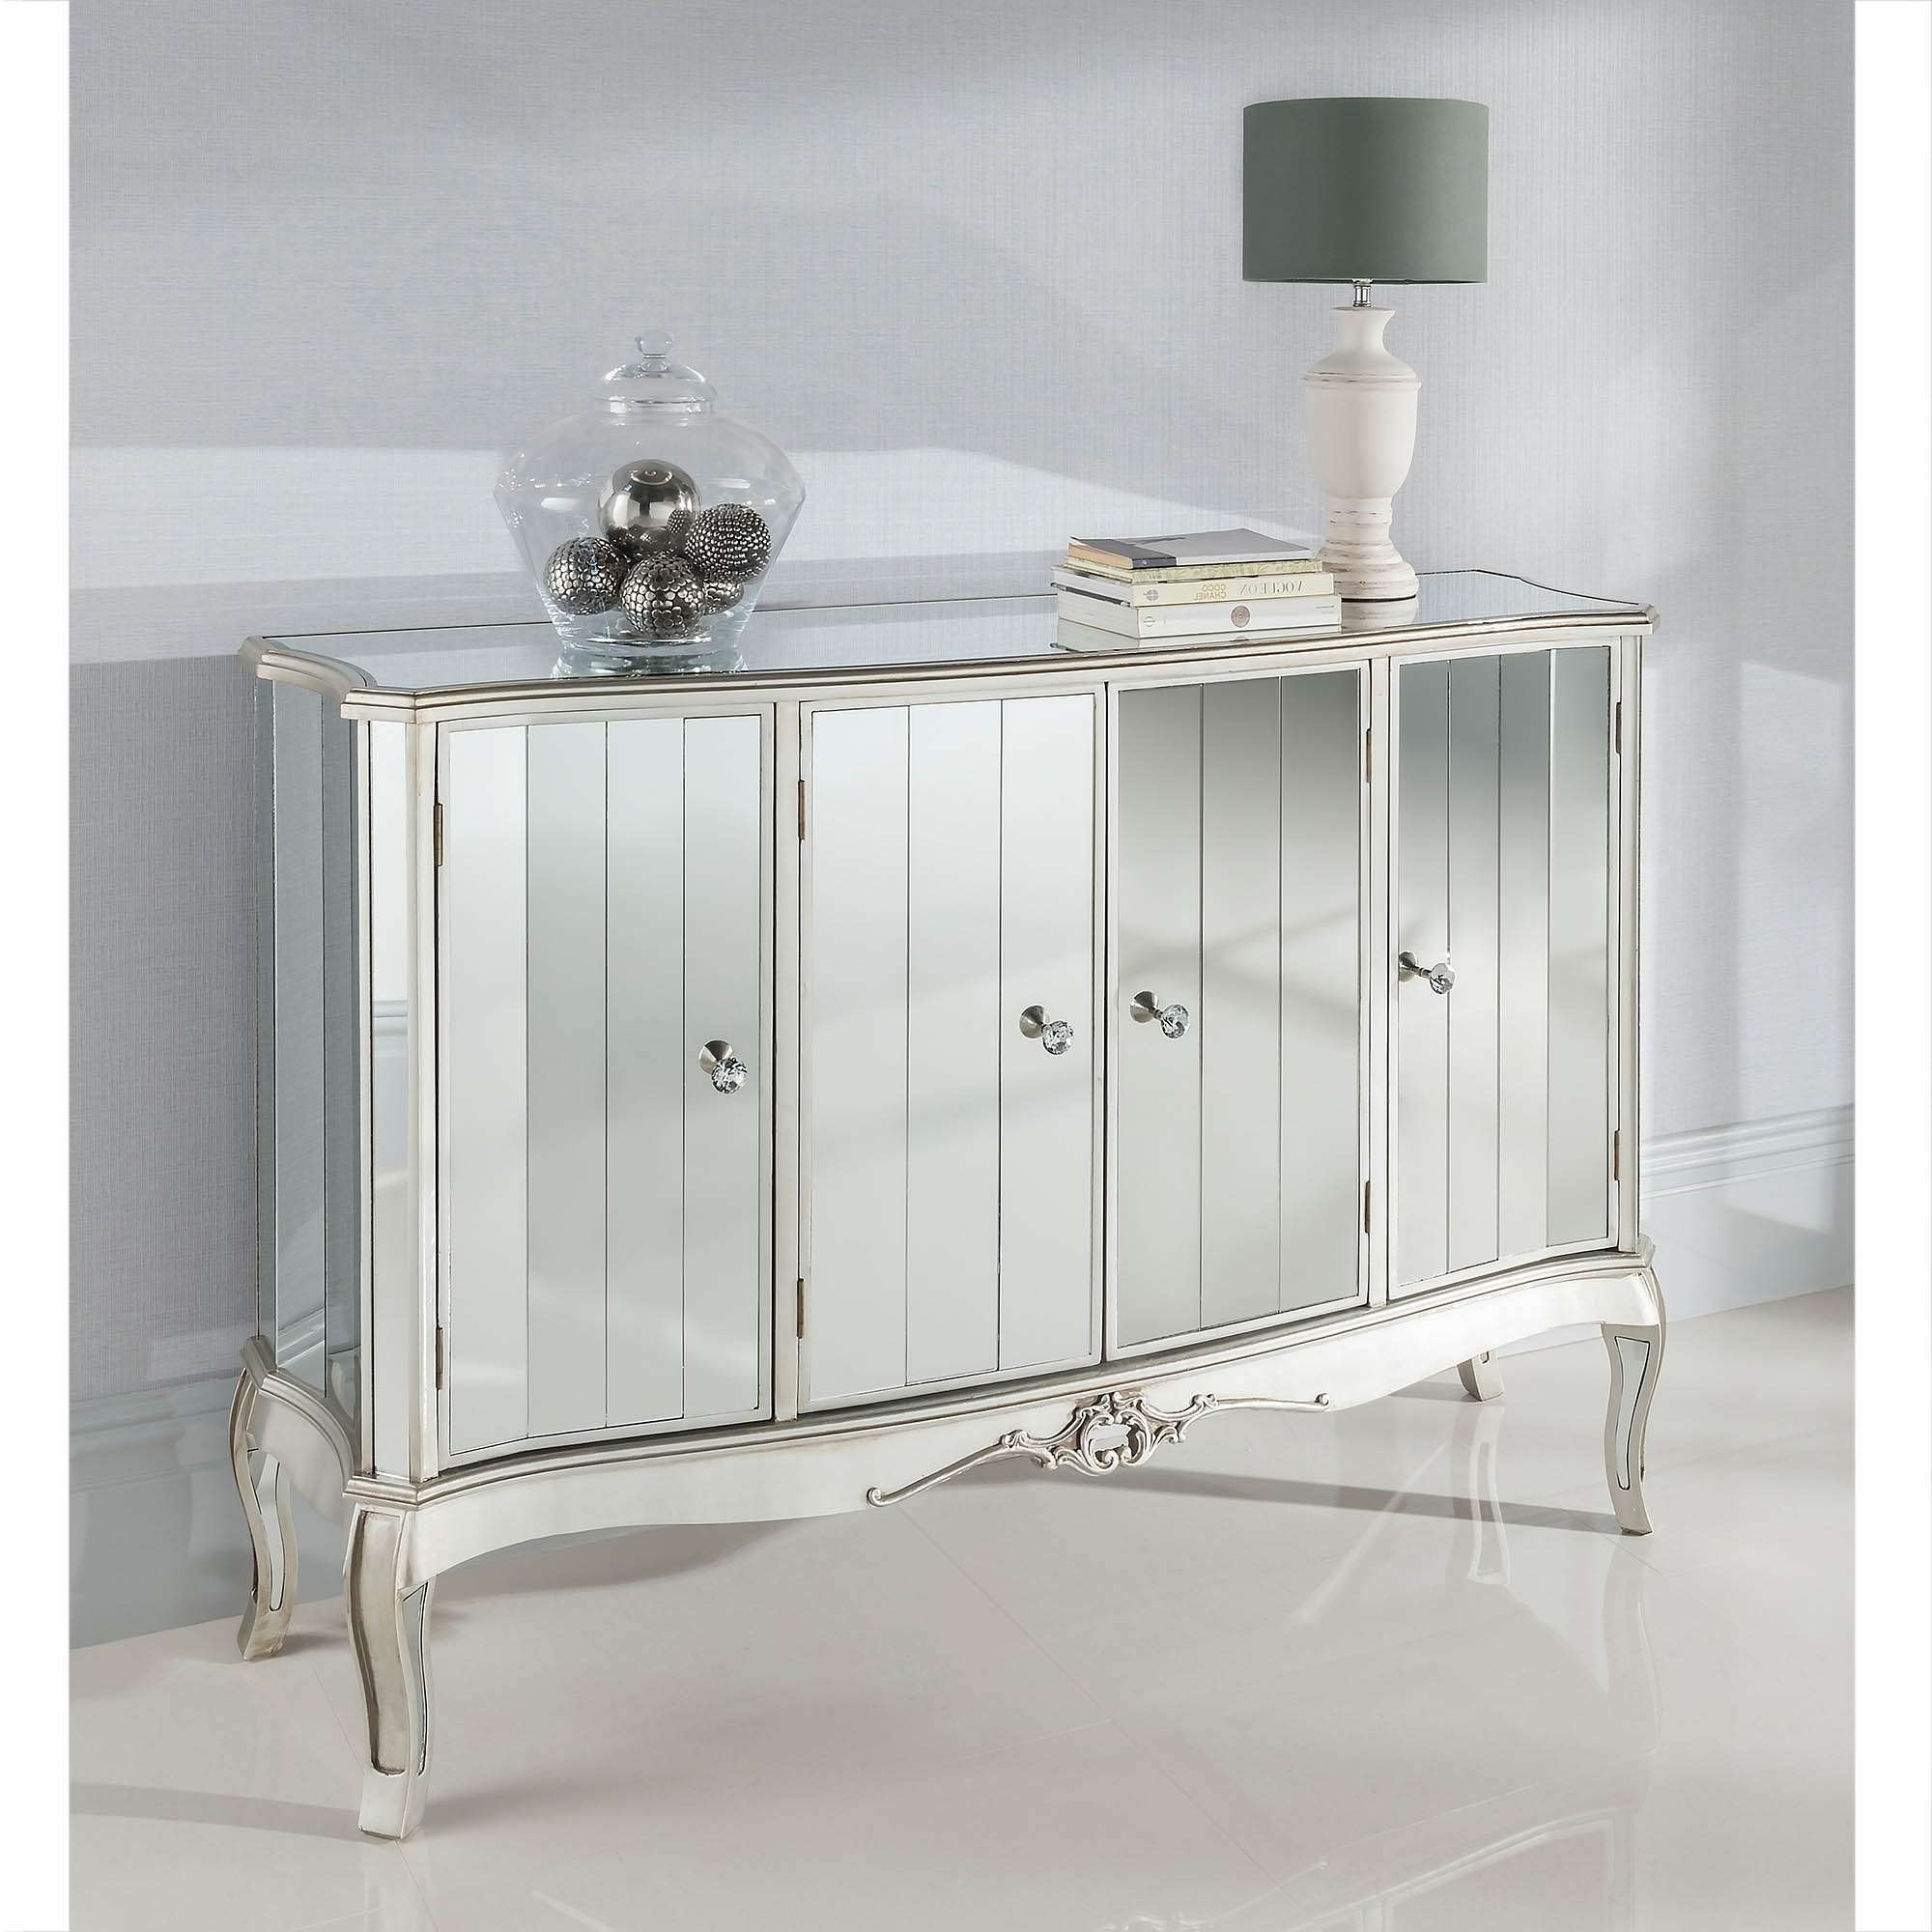 Argente Mirrored Four Door Sideboard | Mirrored Furniture Inside White Mirrored Sideboards (View 6 of 20)